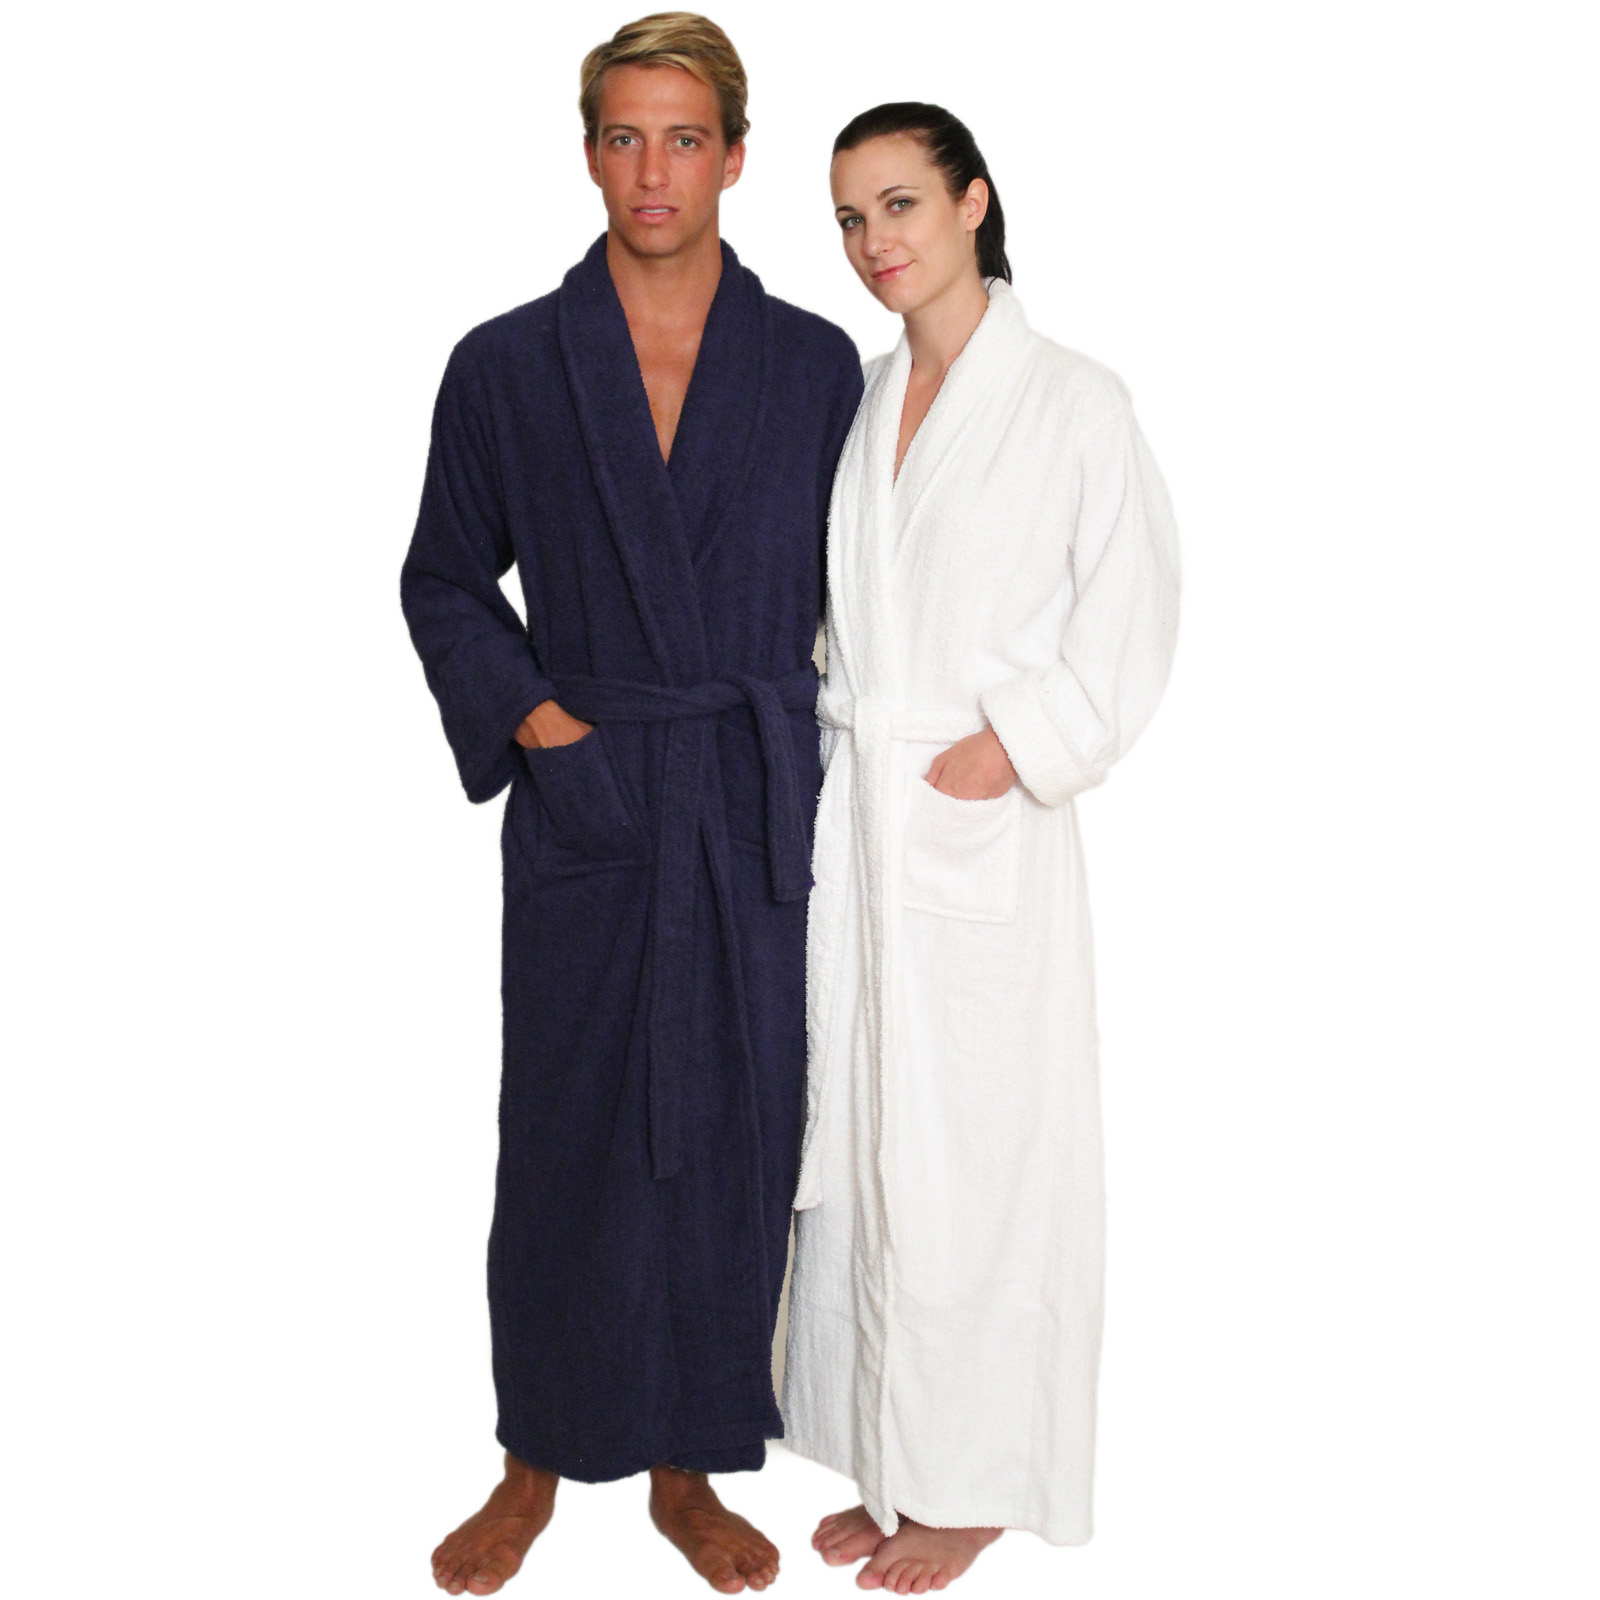 34f62ed5aa Full Length Terry Cloth Robe Long Sleeves 100% cotton  49.99 Colors  Mint-2X